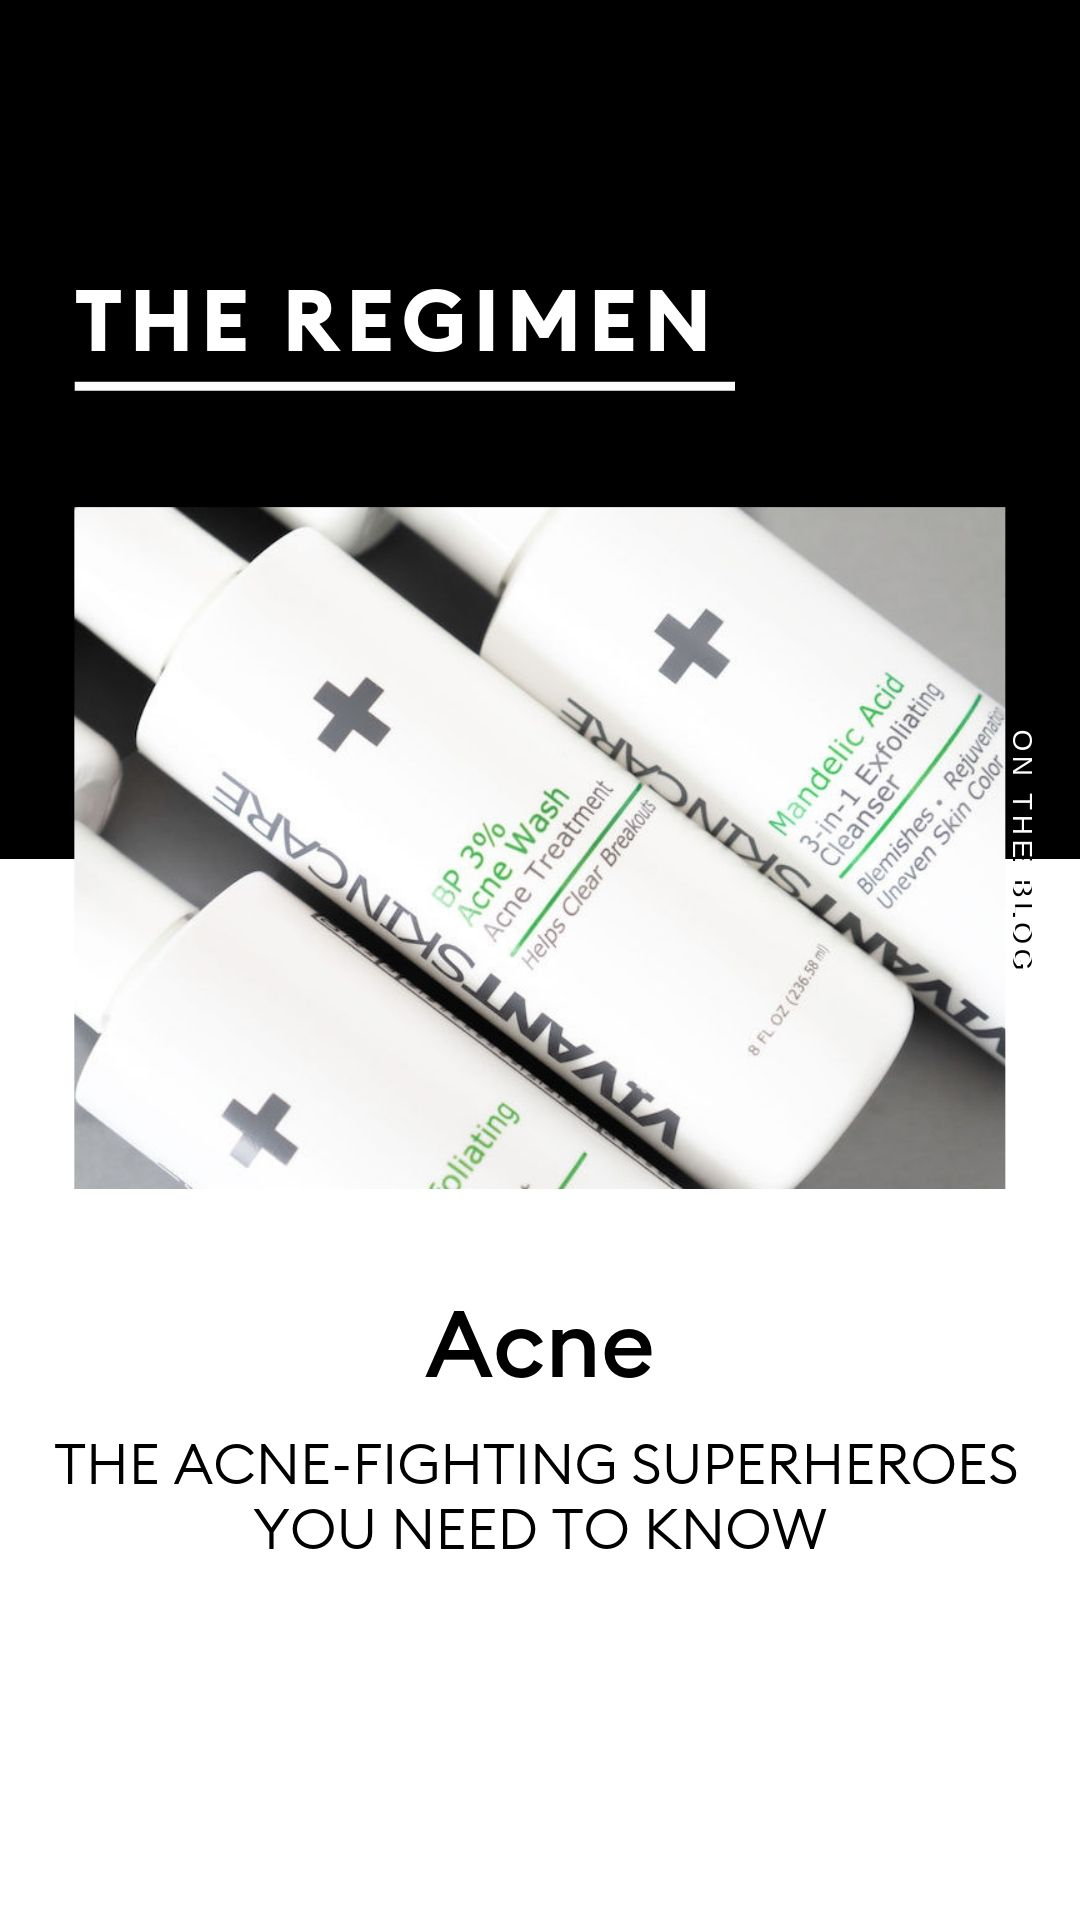 The AcneFighting Superheroes You Need to Know (With